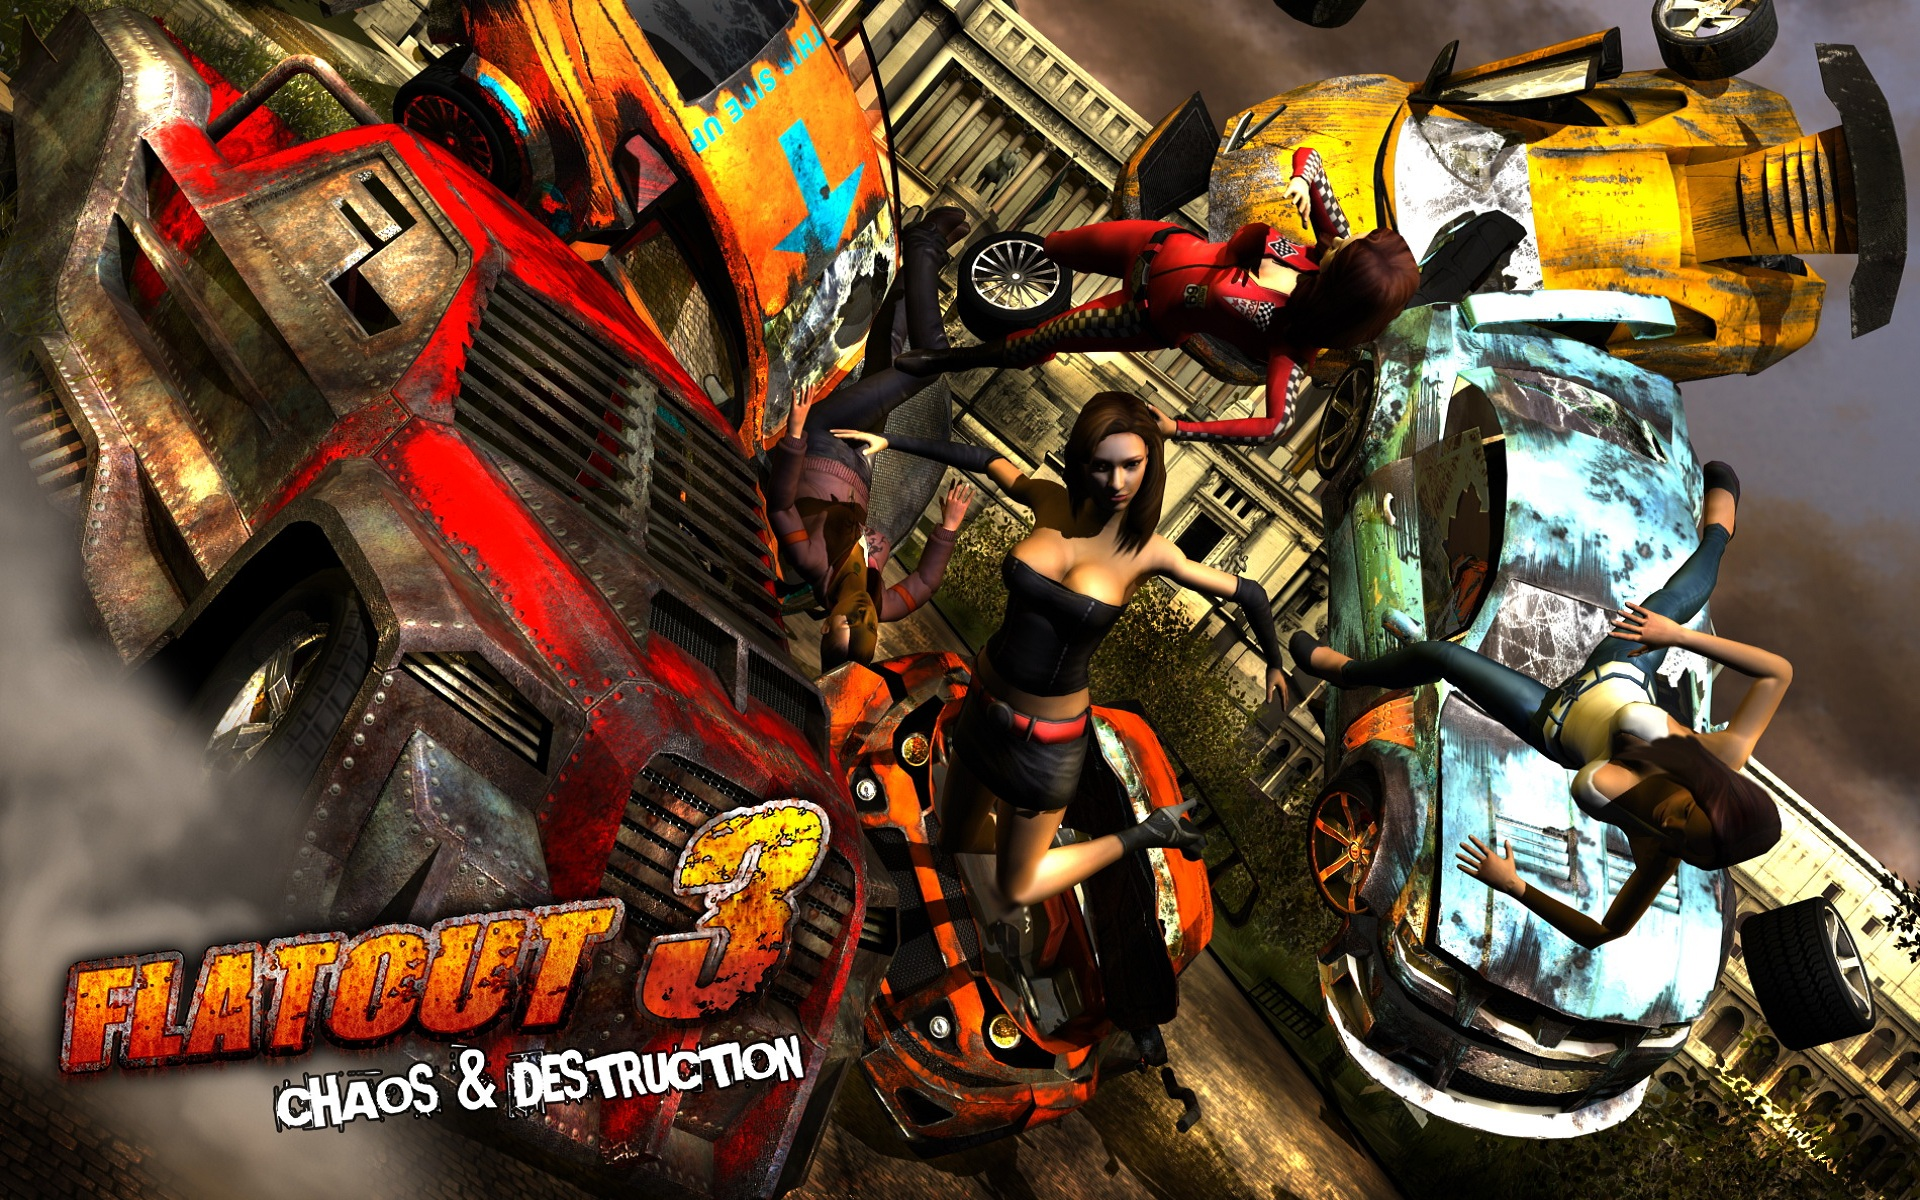 скачать Flatout 3 Chaos and Destruction